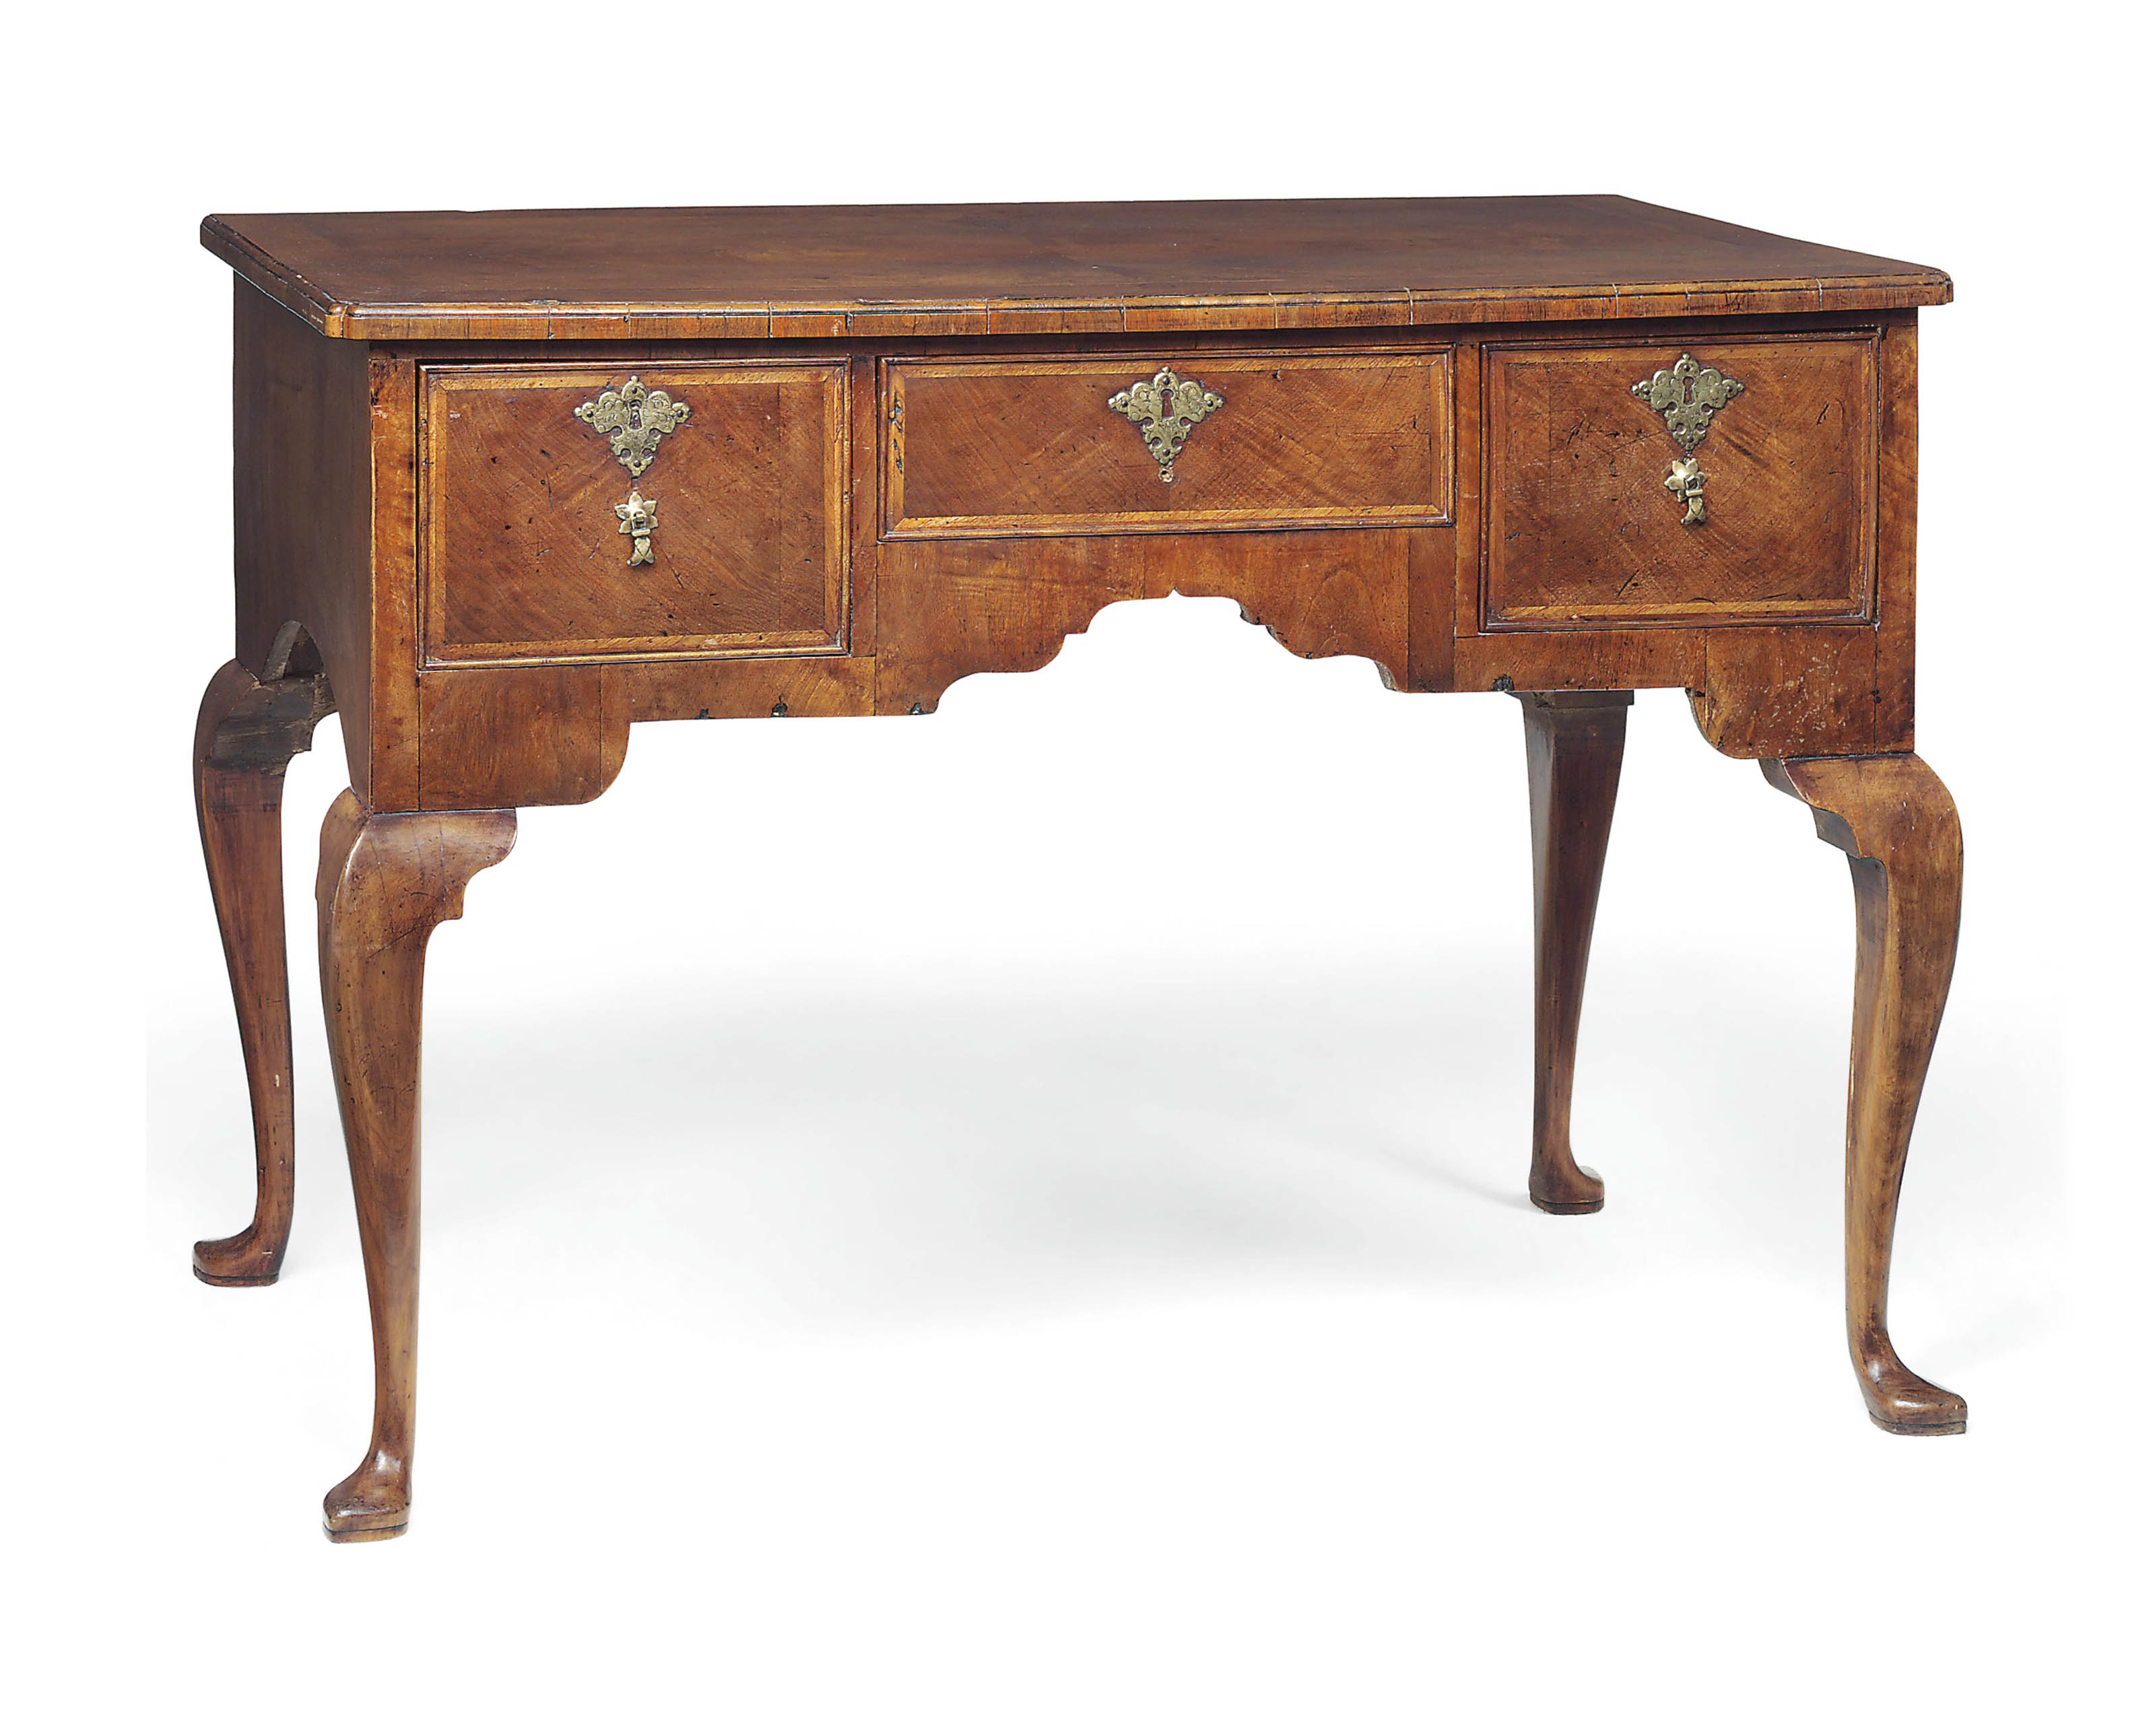 A GEORGE II WALNUT LOWBOY